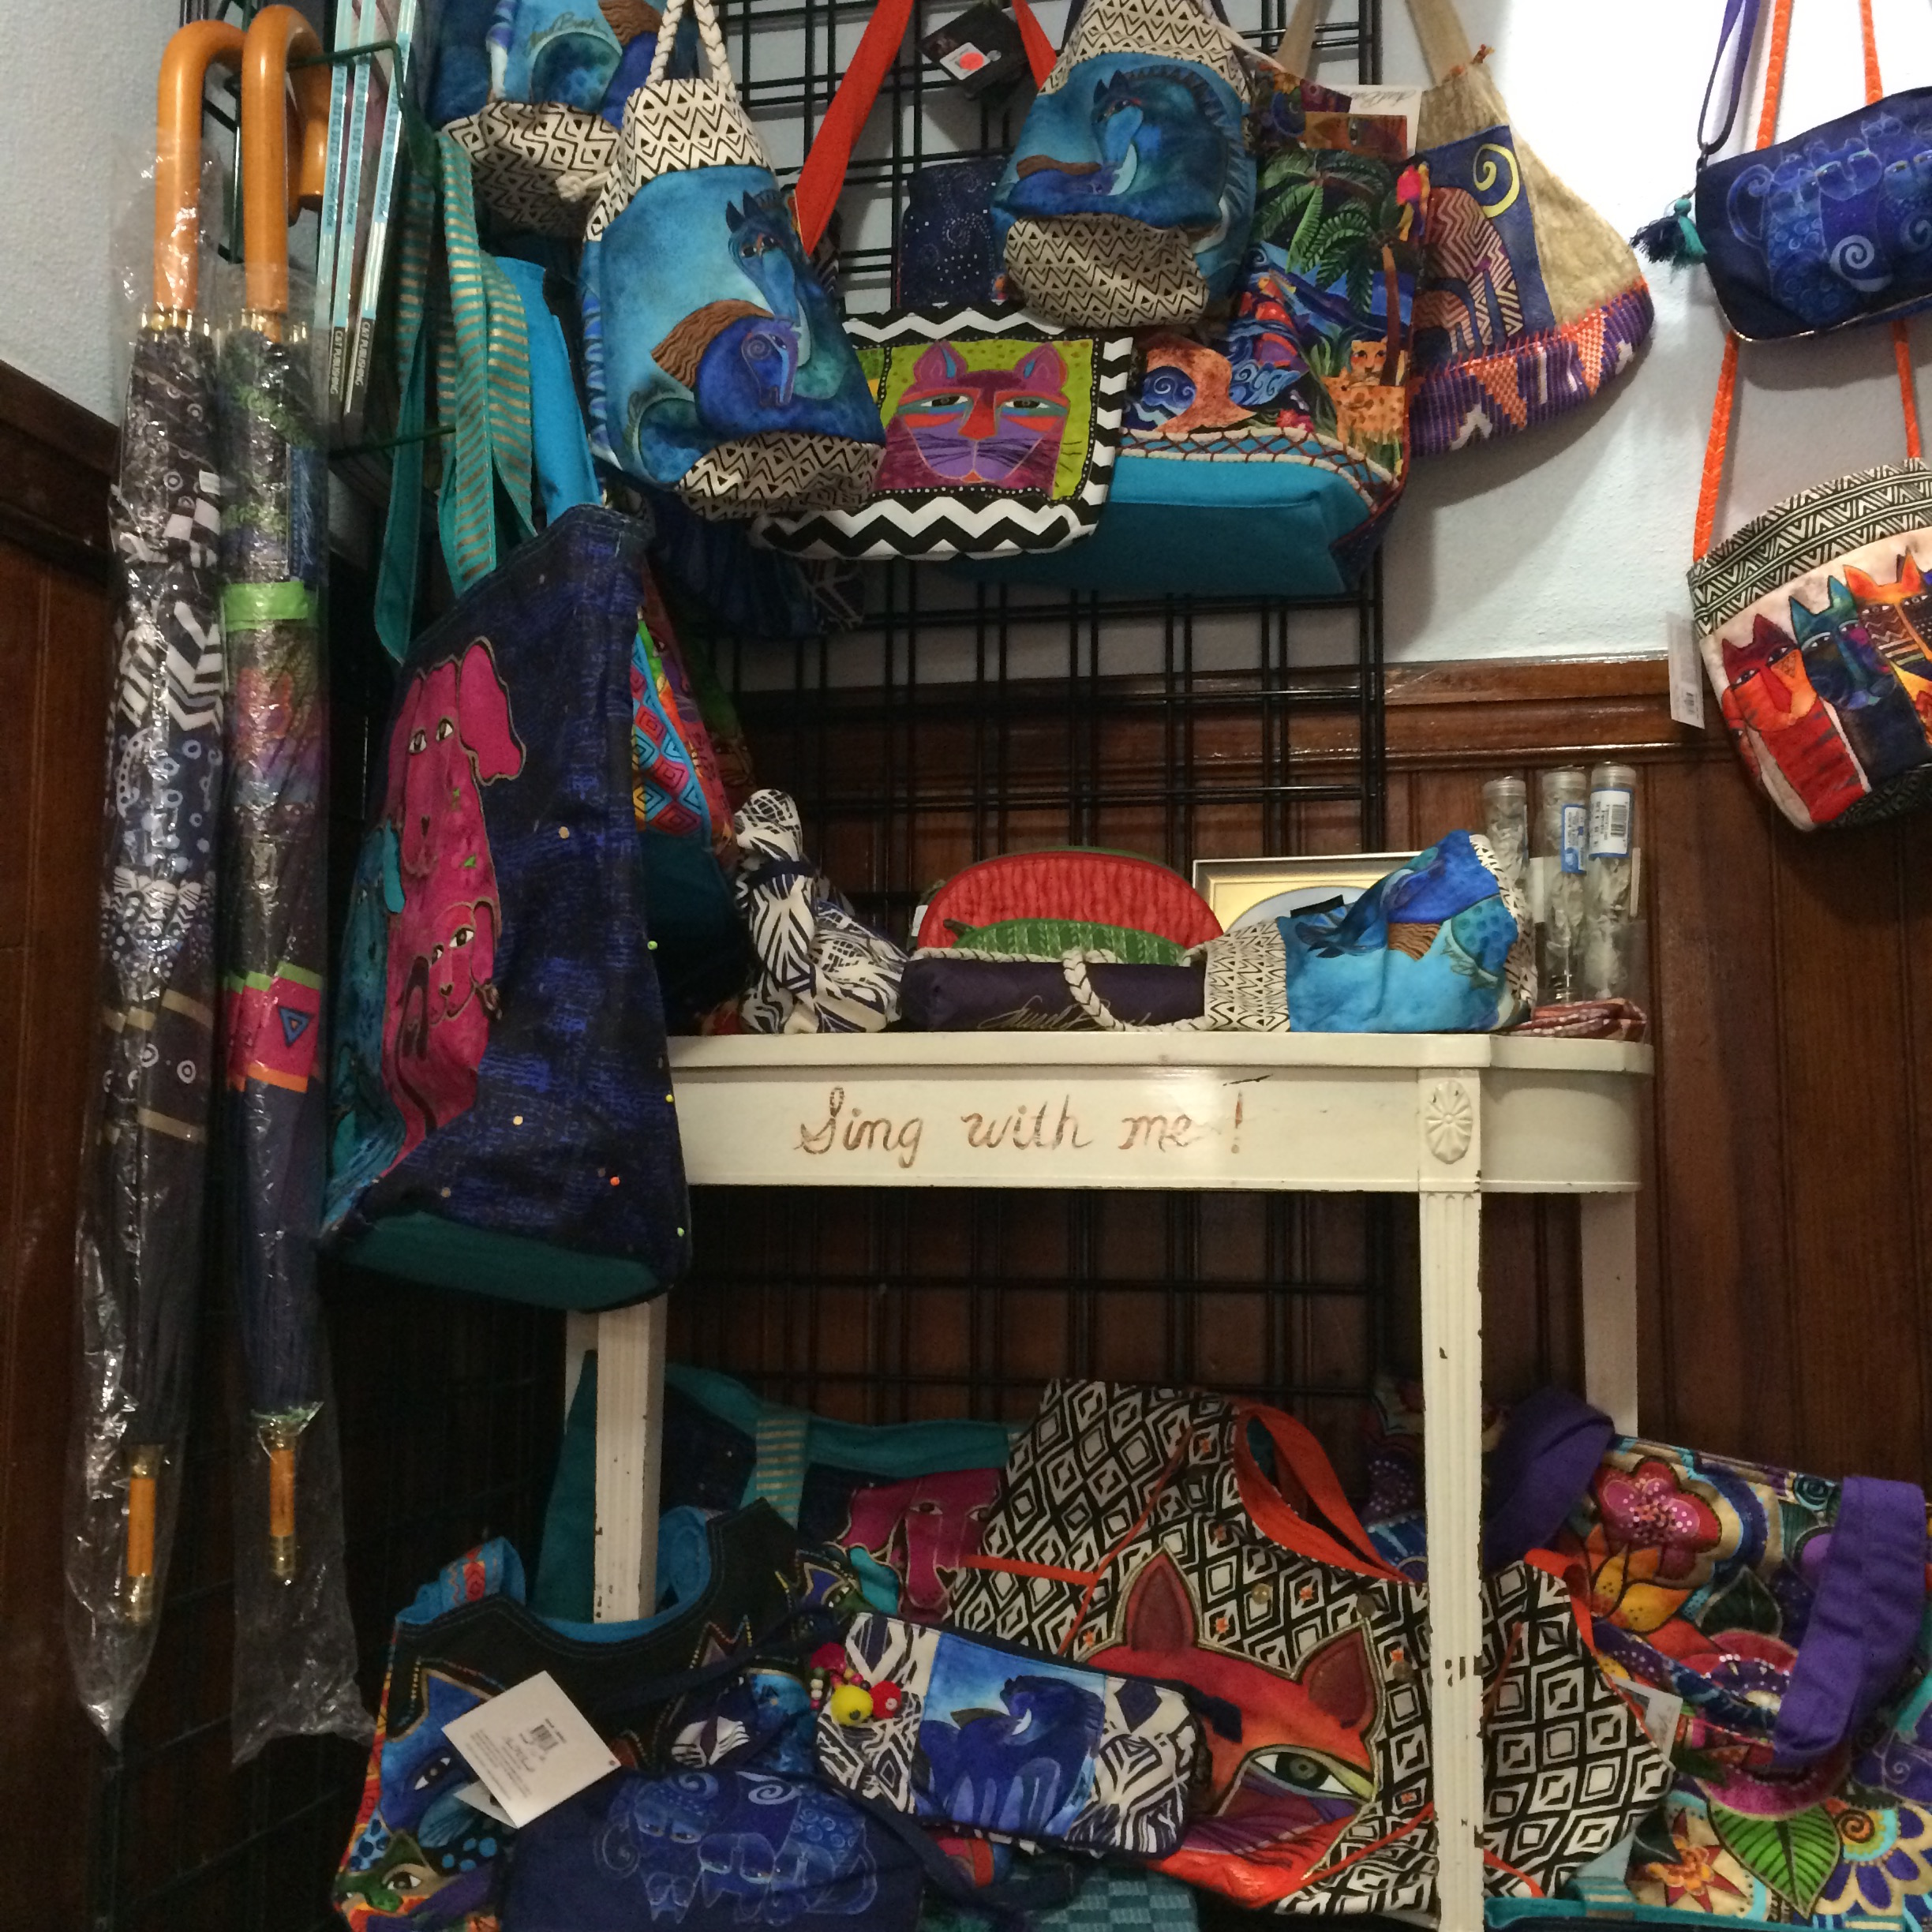 New Laurel Burch bags in the store!